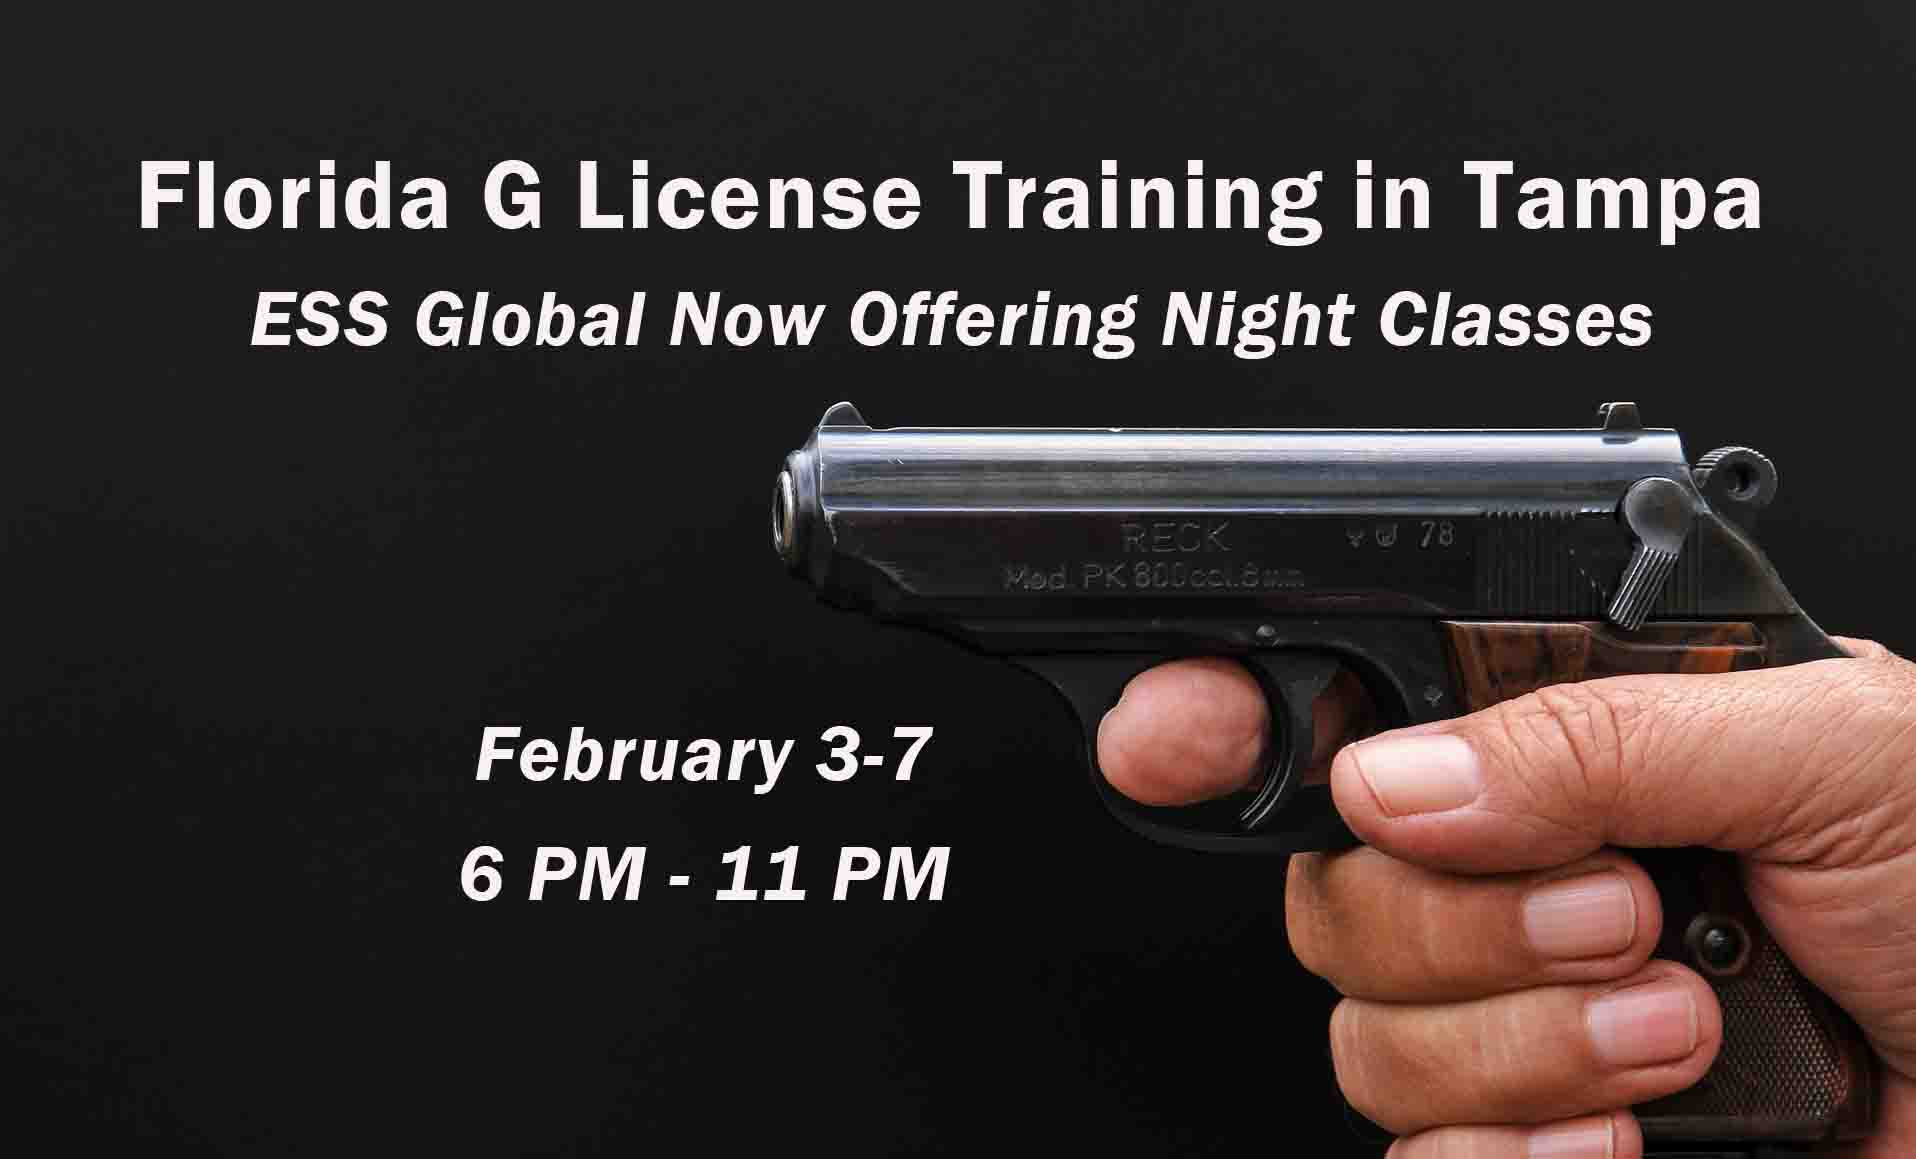 Florida G License Training in Tampa